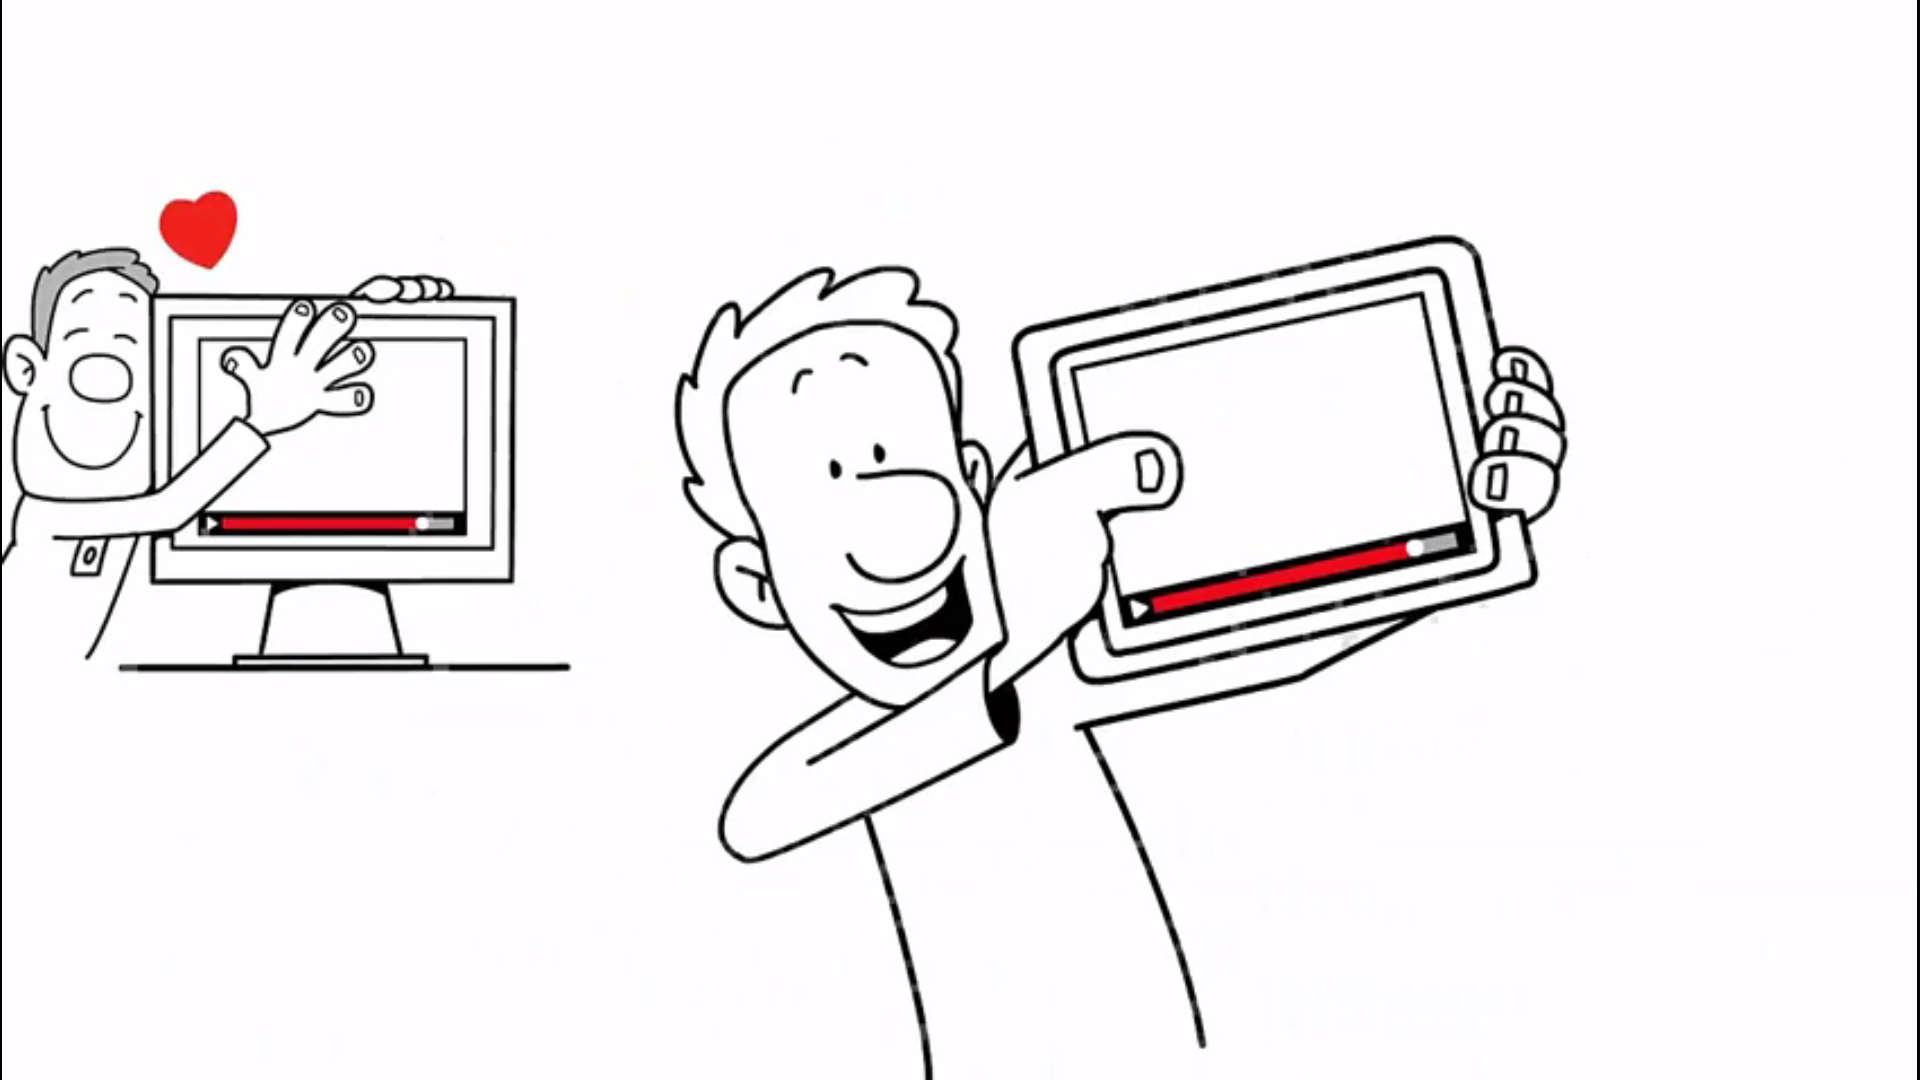 Whiteboard animation